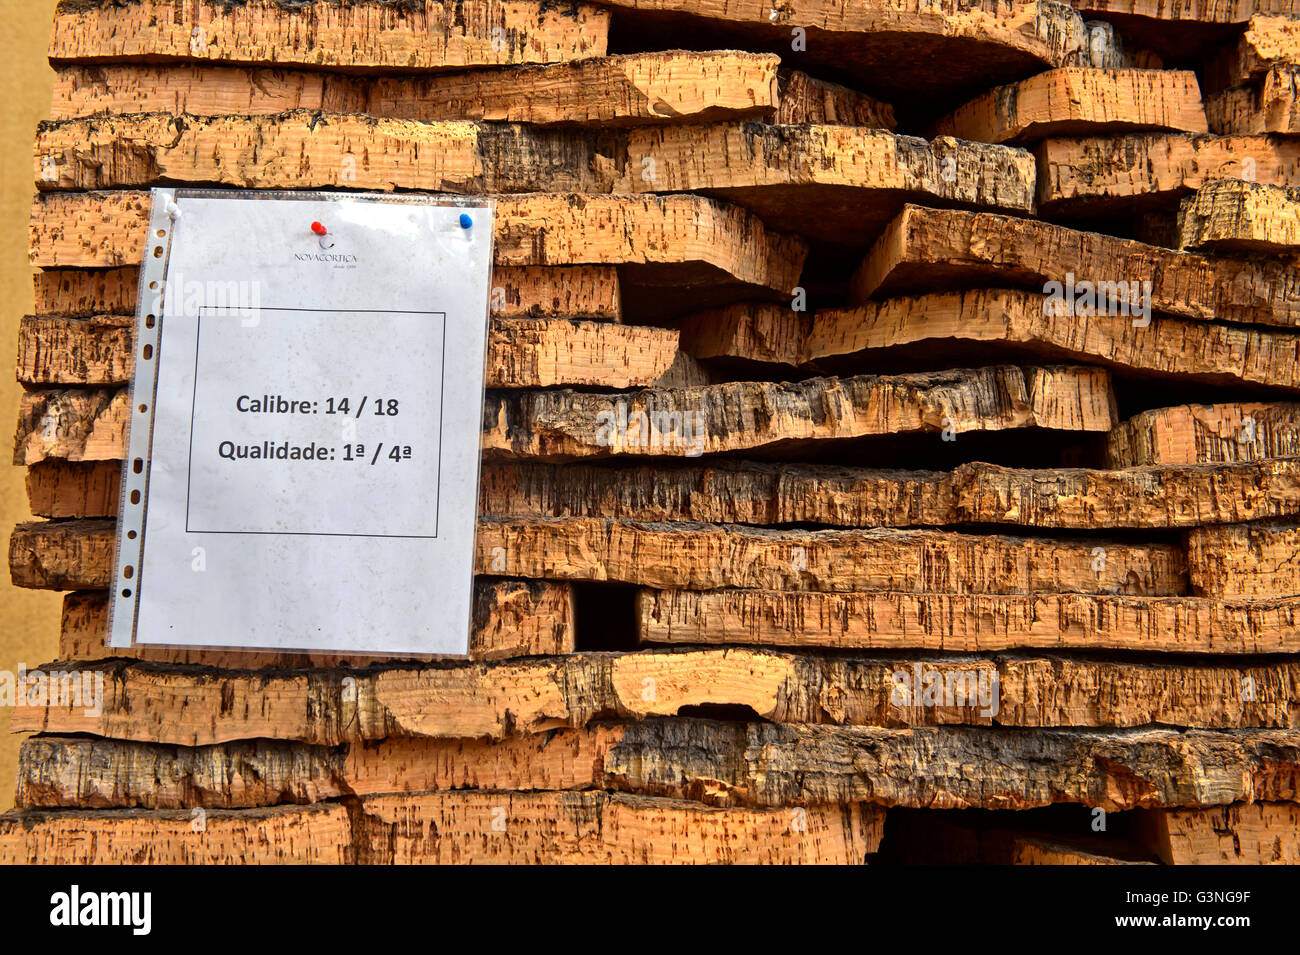 Graded bark of the cork oak (Quercus suber), cork factory Novacortiça, São Brás de Alportel, Algarve, - Stock Image